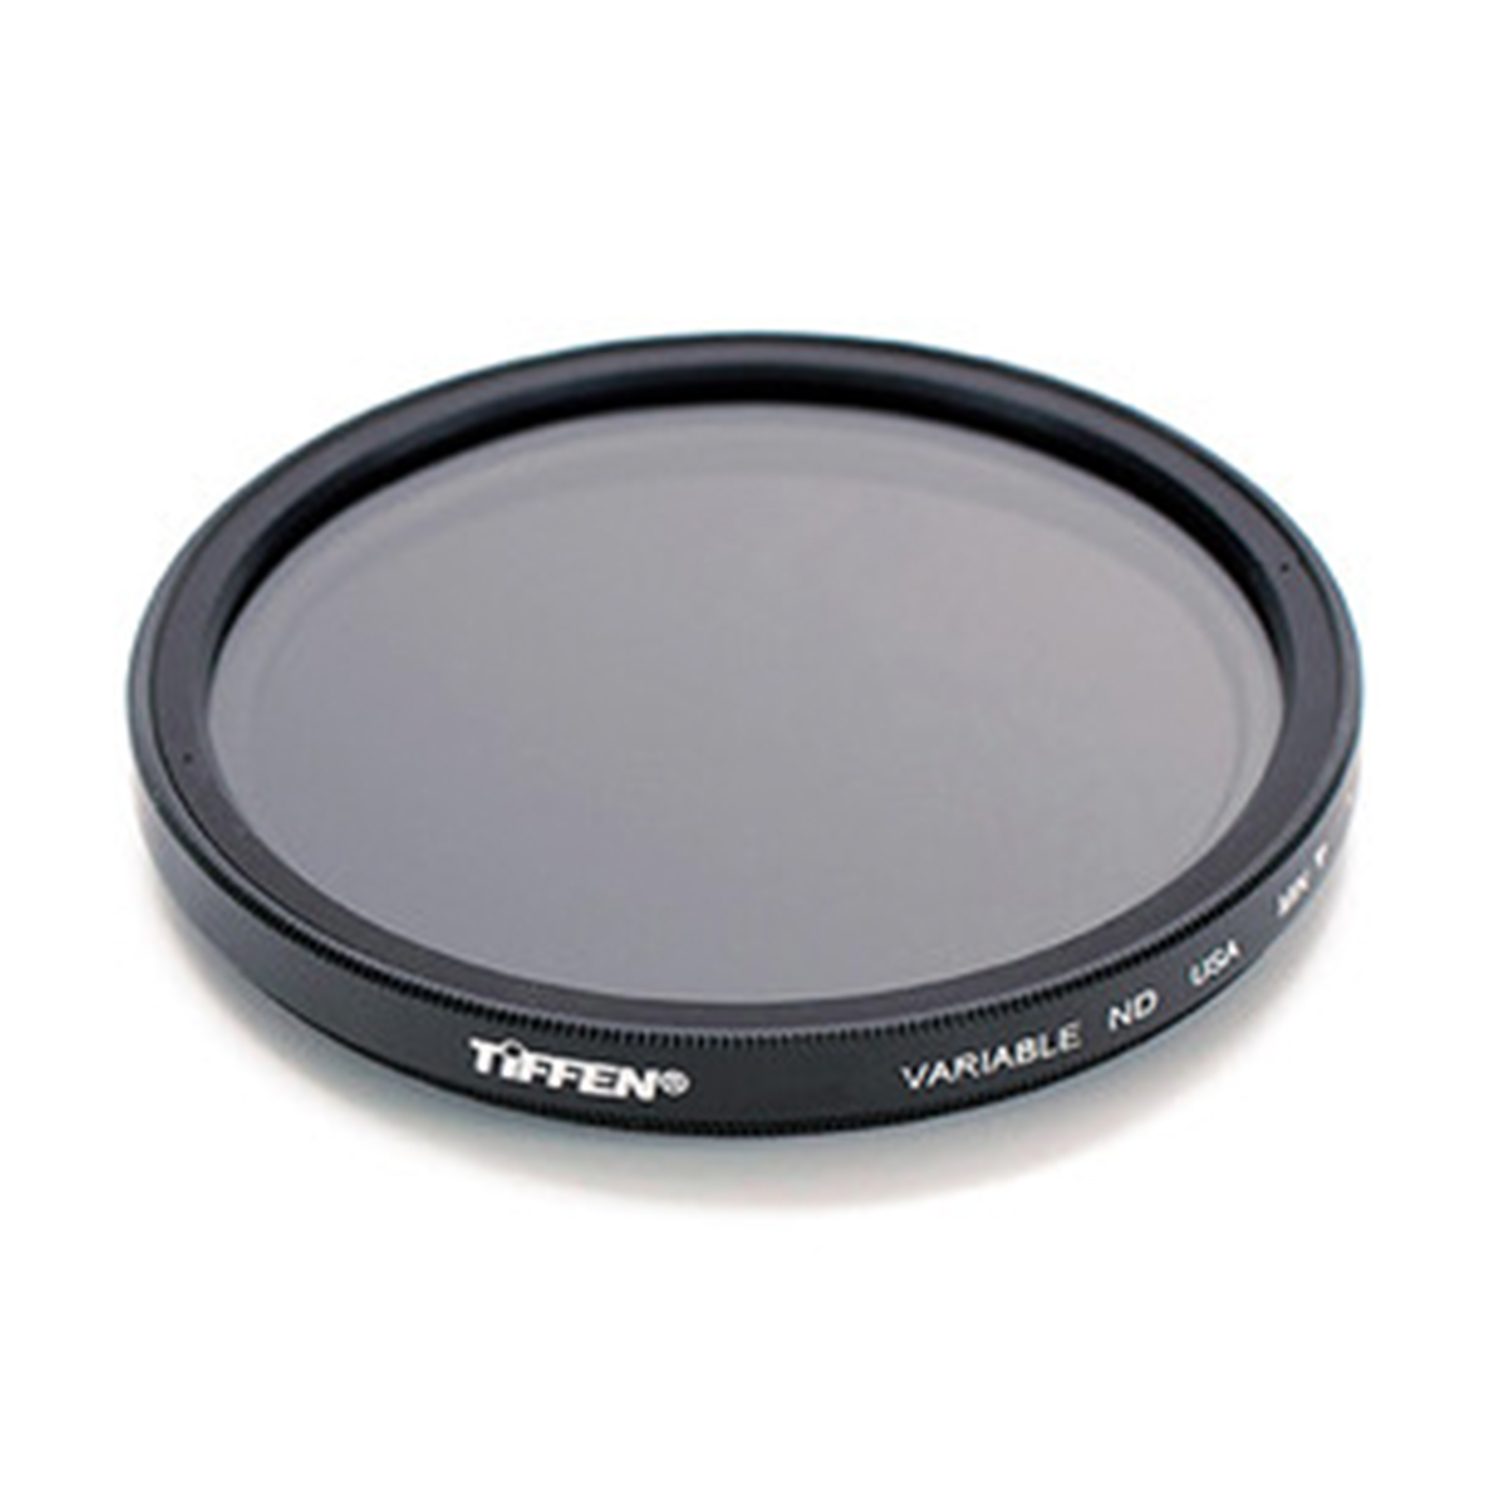 Phottix Variable ND Filter - 52mm